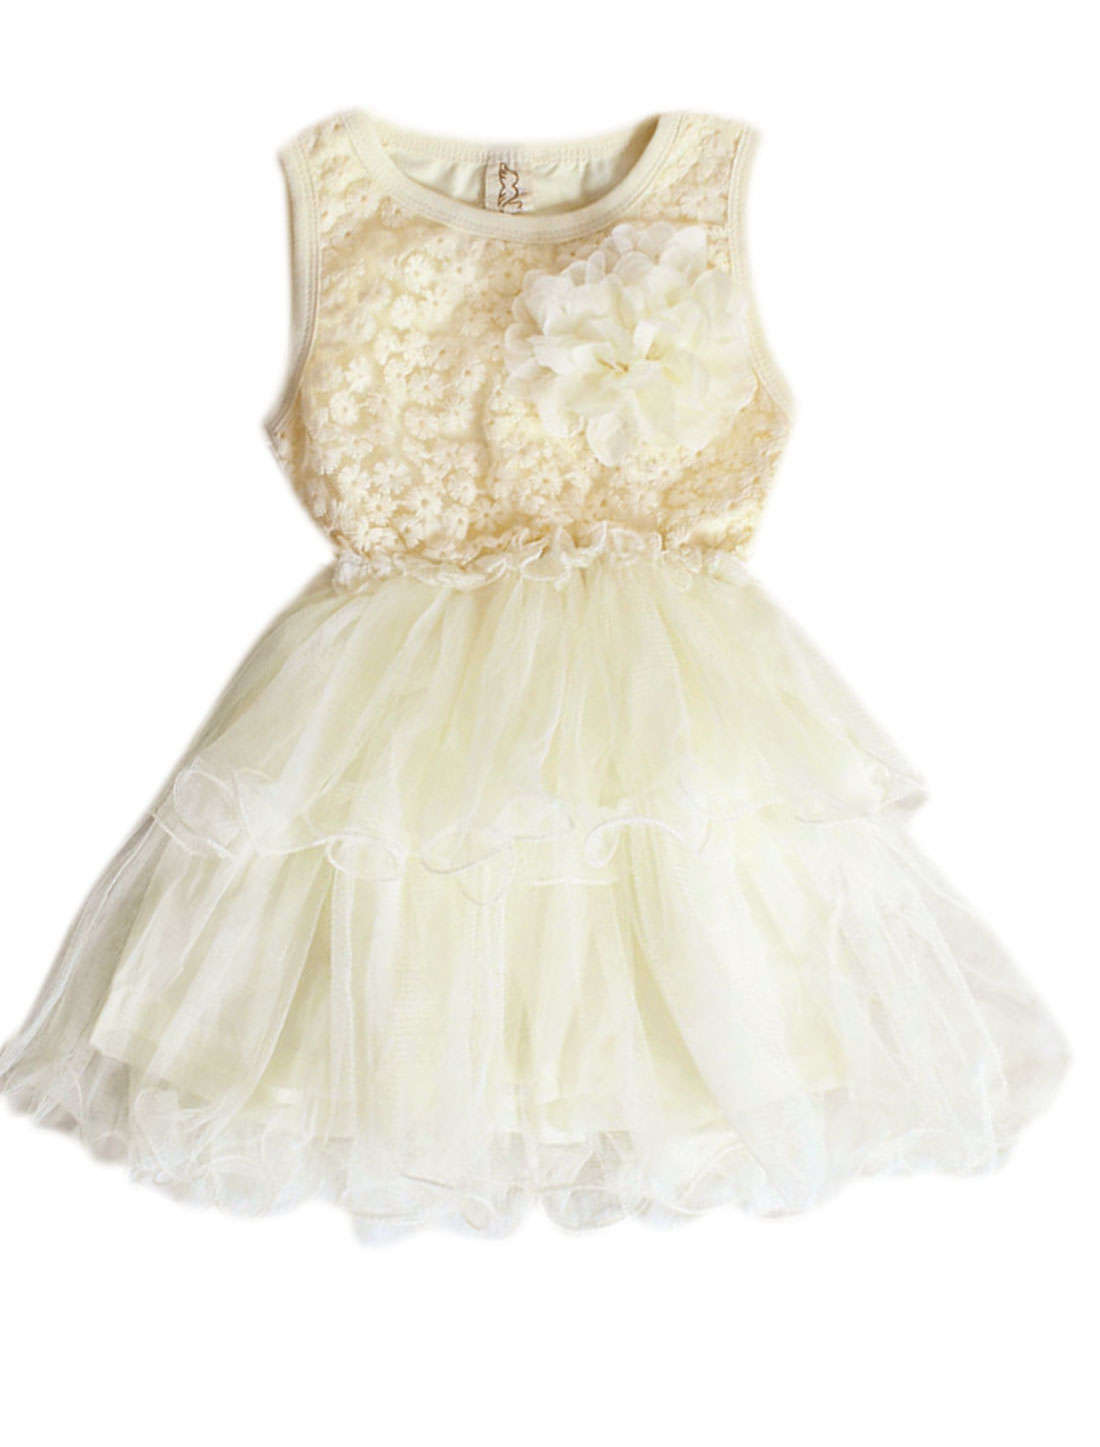 Light Yellow Round Neck w Flower Brooch Dress 12 month for Girls